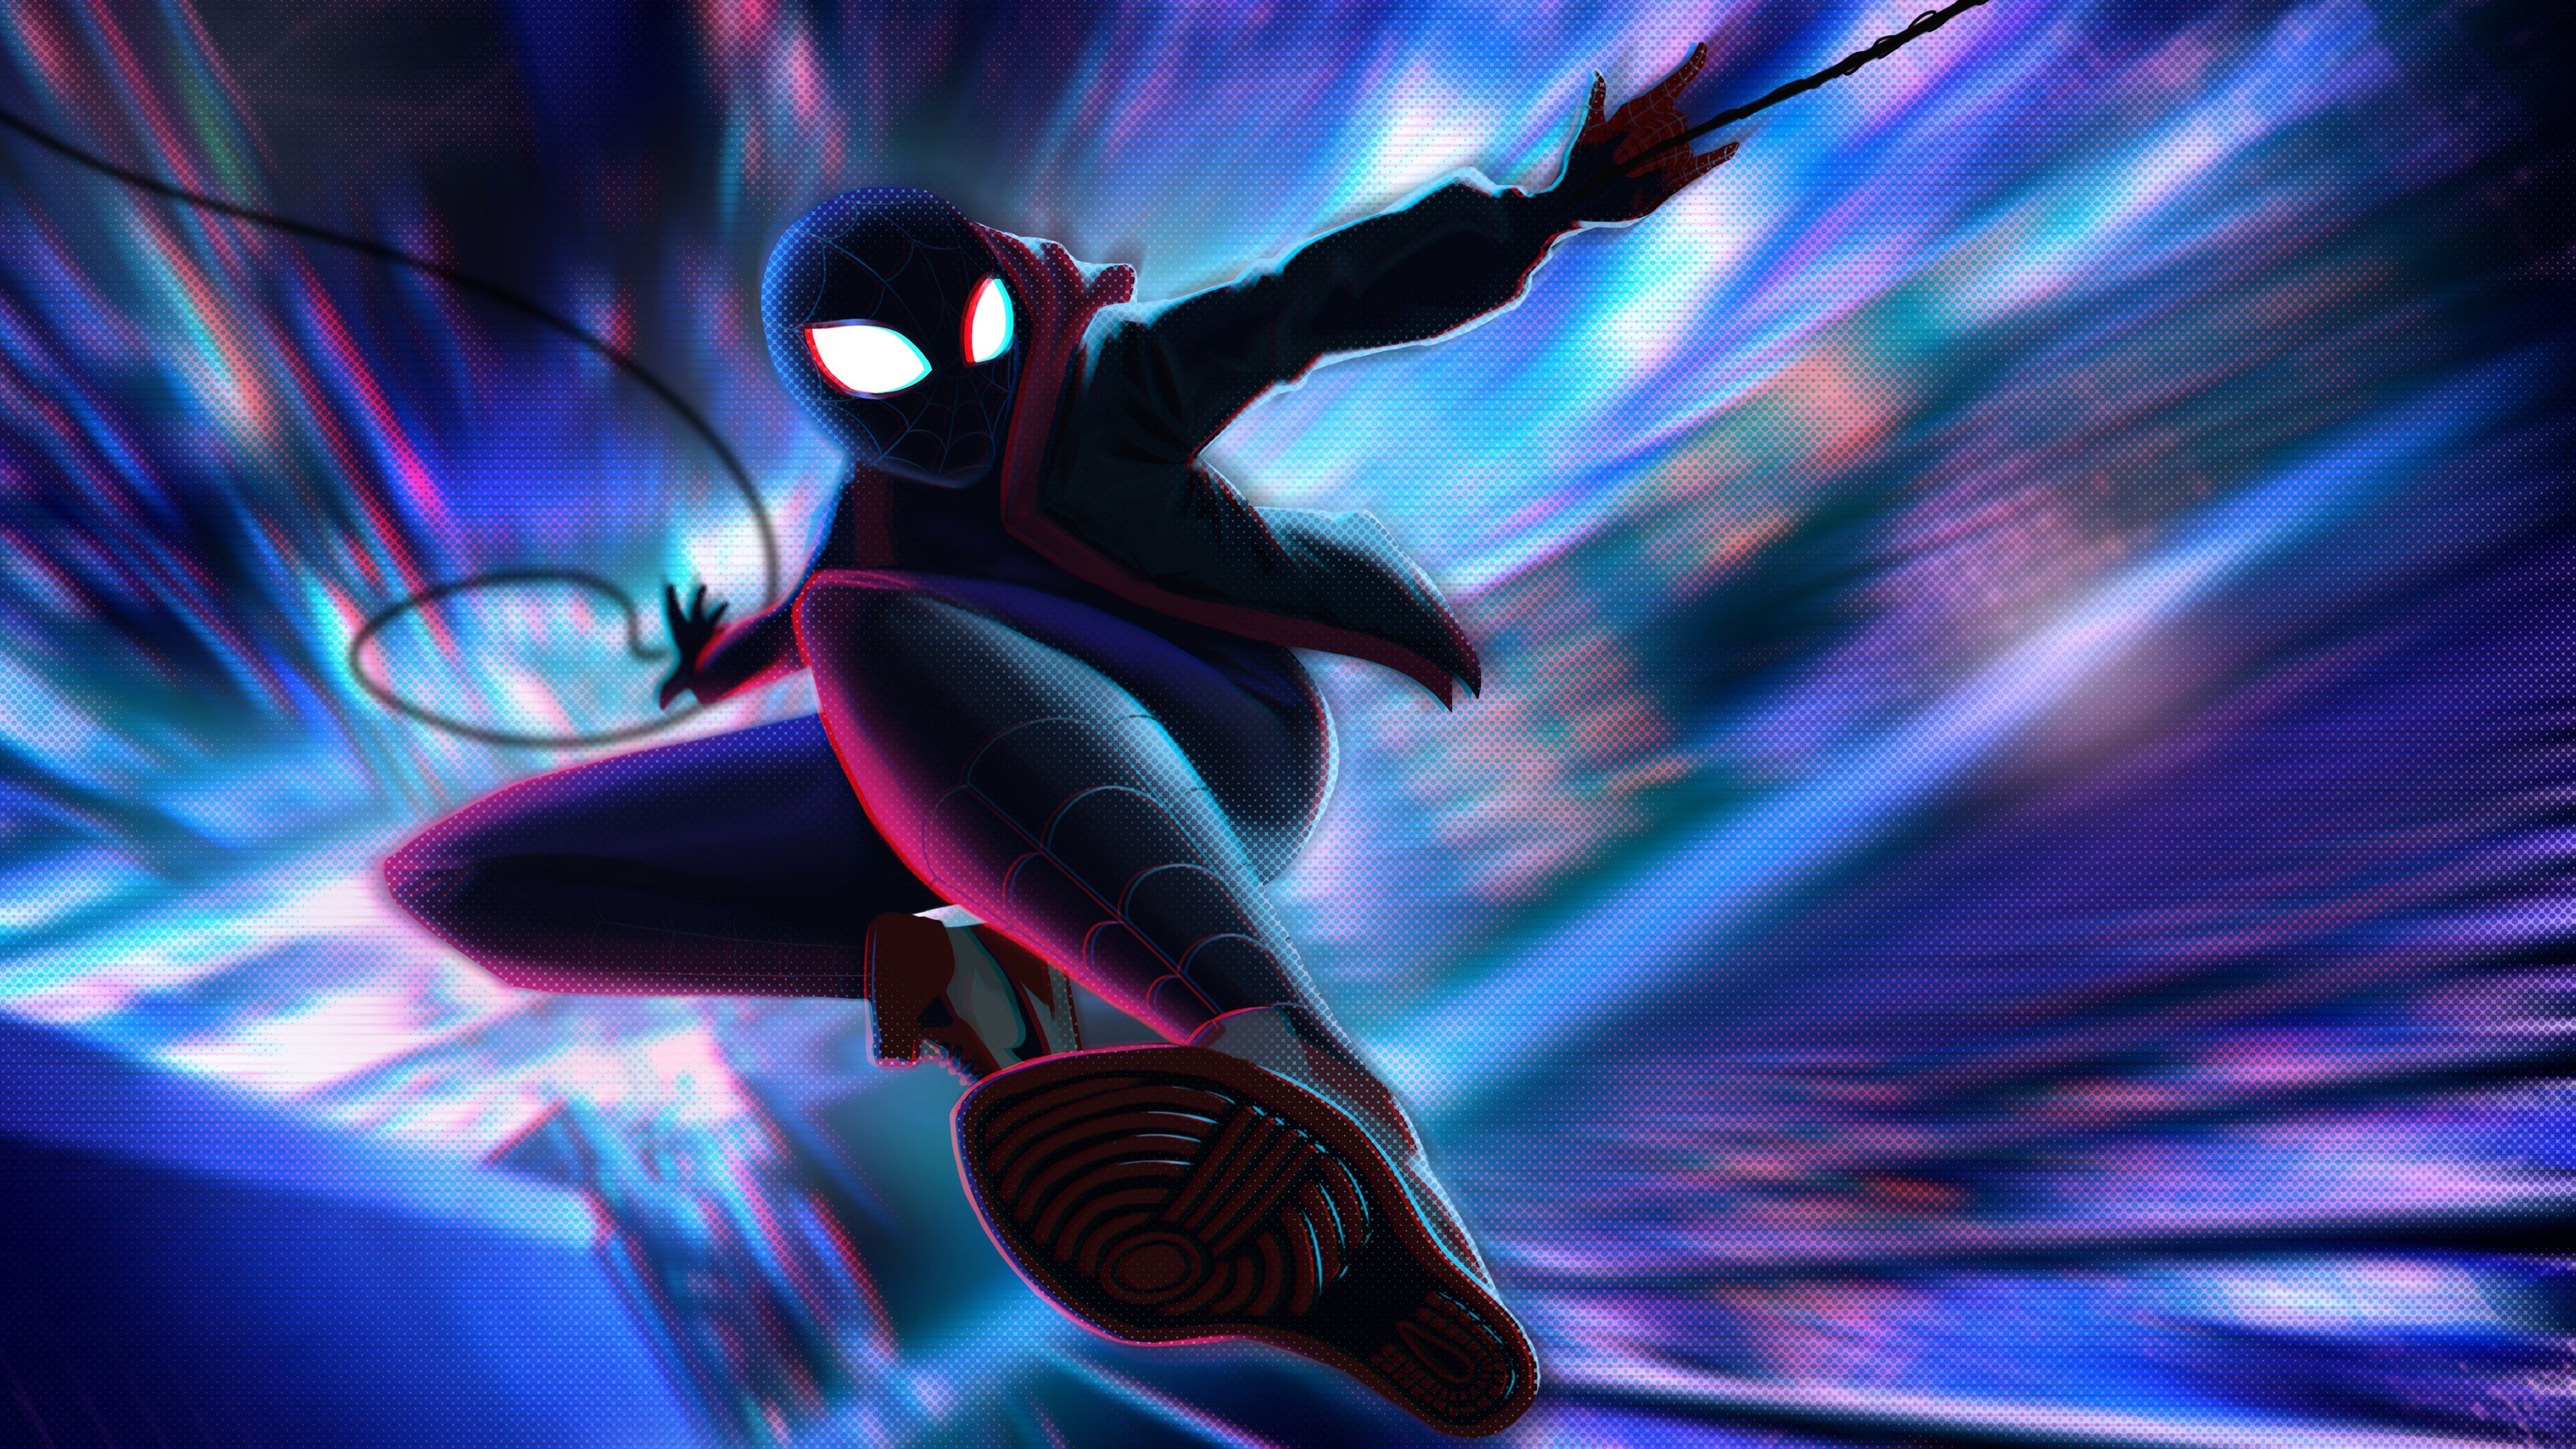 Spiderman Miles Morales Jump 4k Superheroes Wallpapers Spiderman Wallpapers Spiderman Into The Spider Verse Wallpapers Spider Verse Spiderman Miles Morales